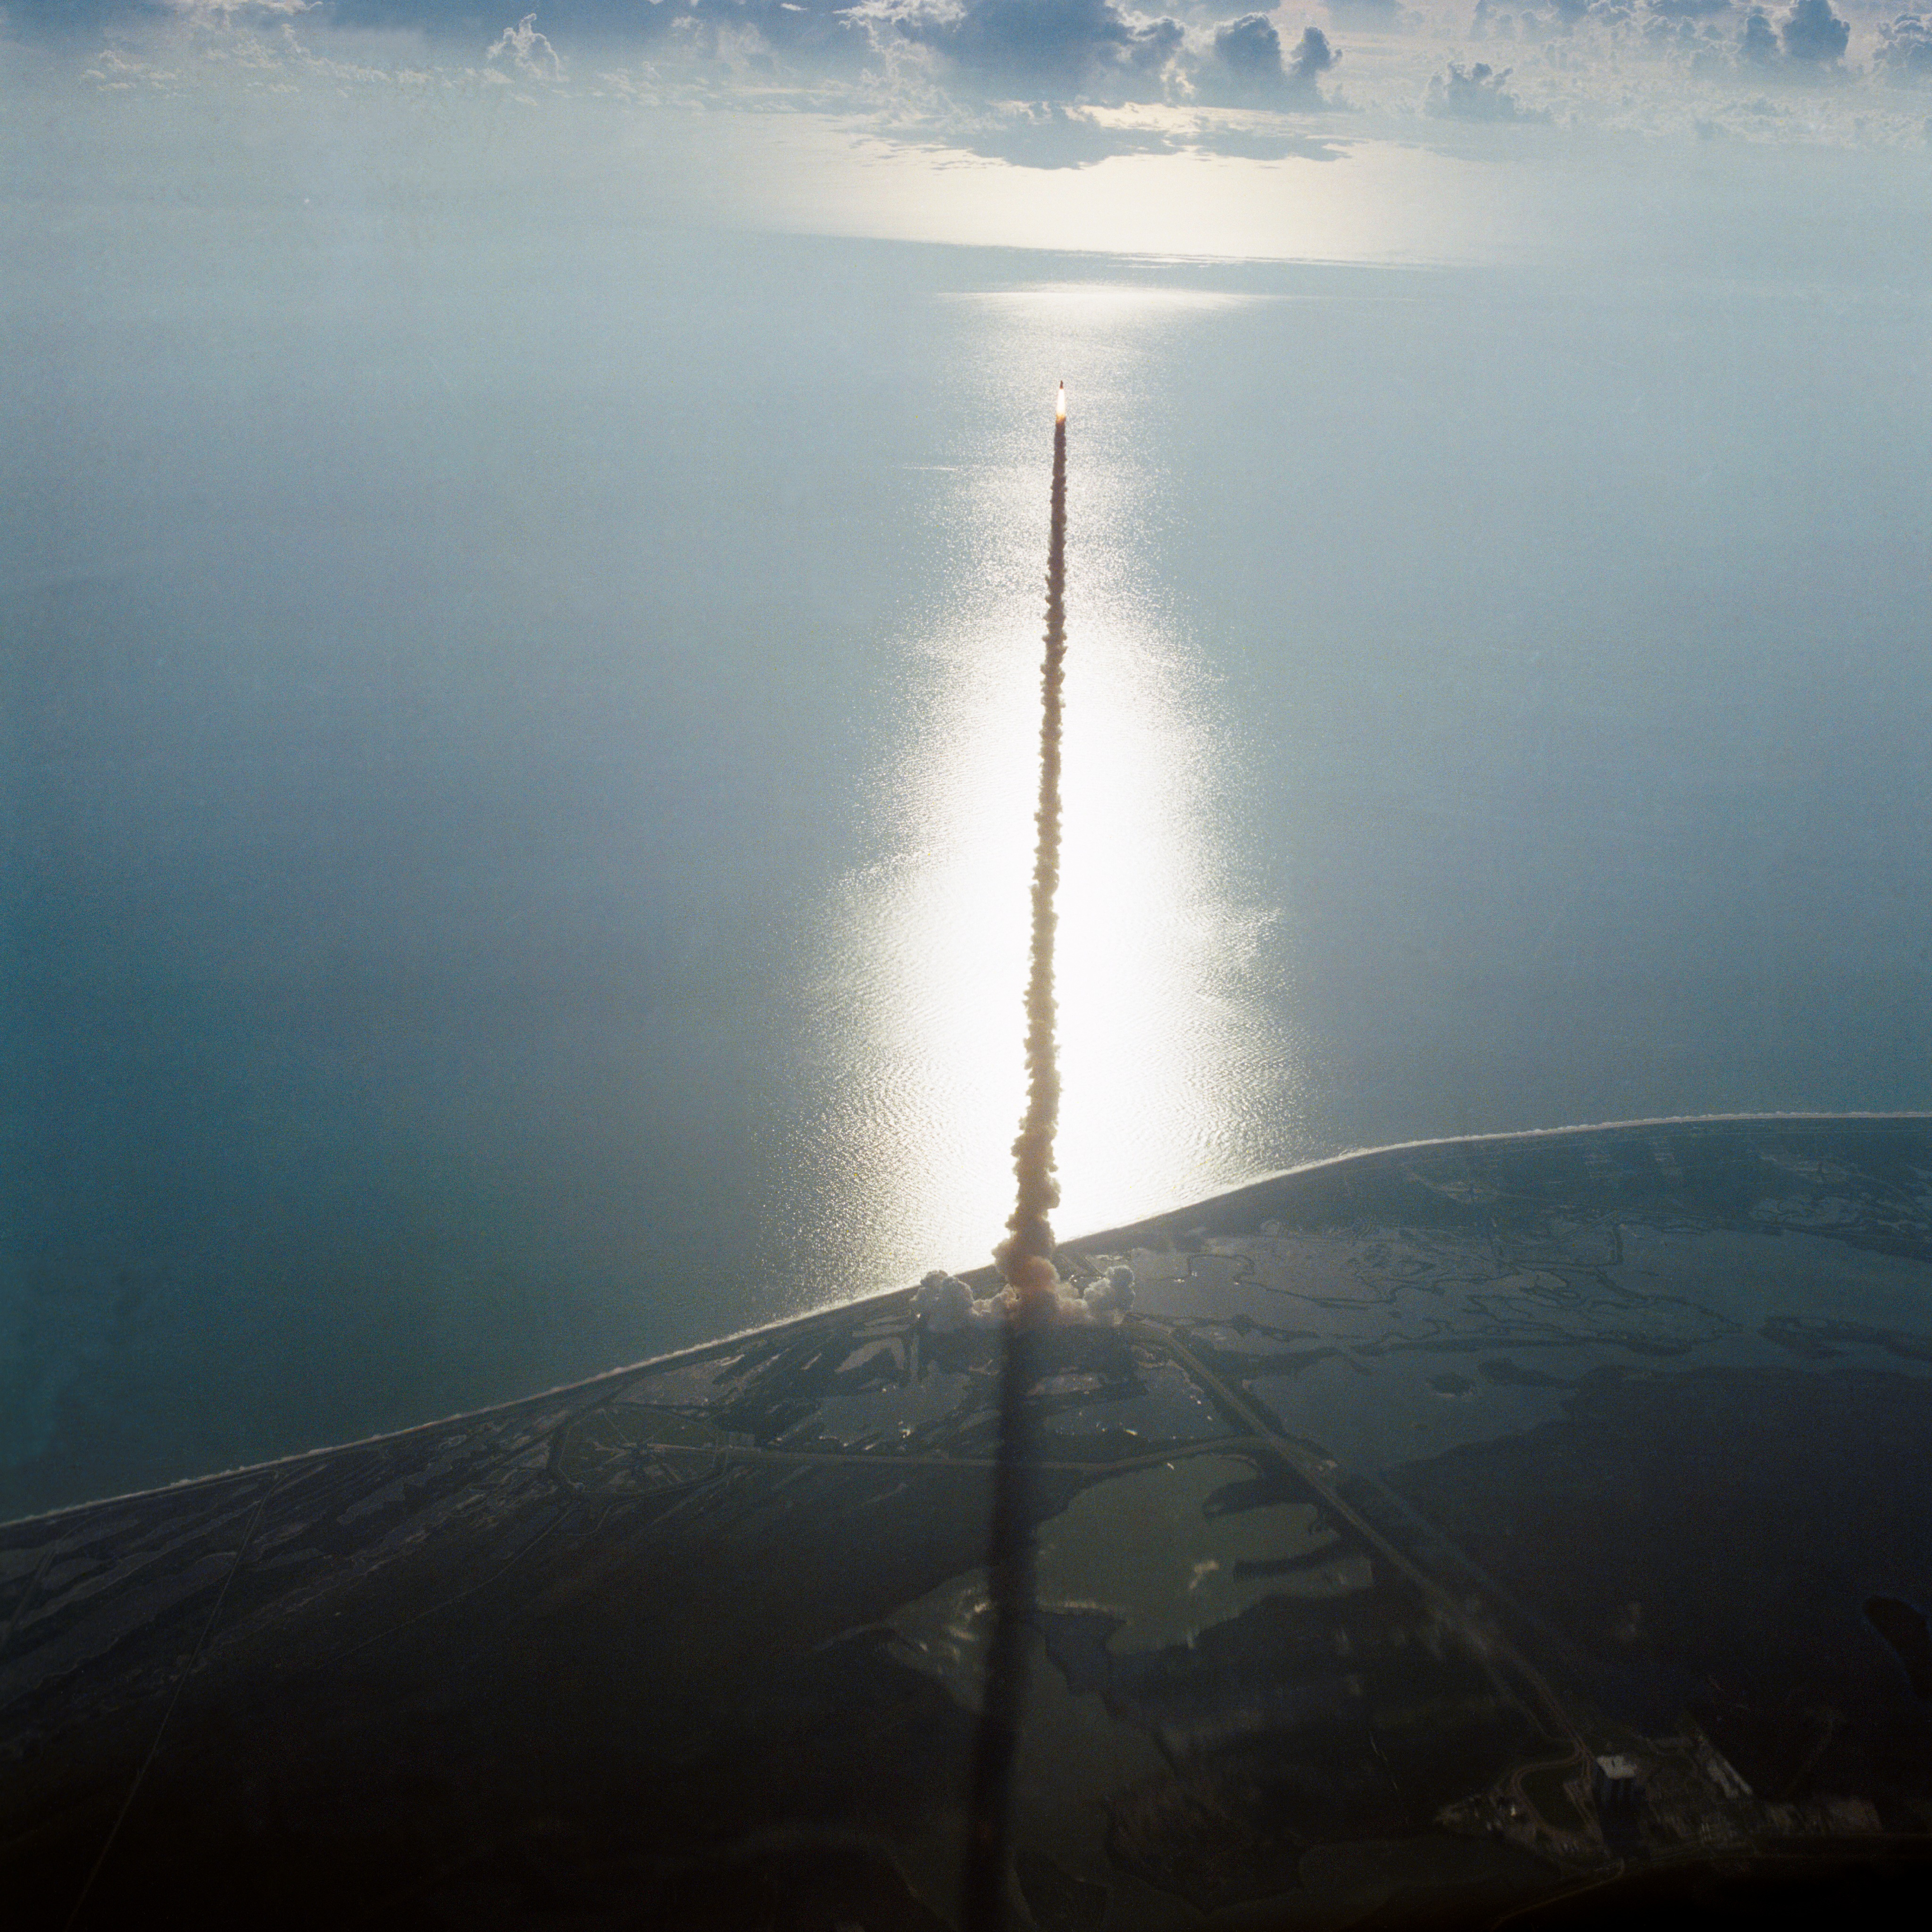 First Launch of Space Shuttle Discovery